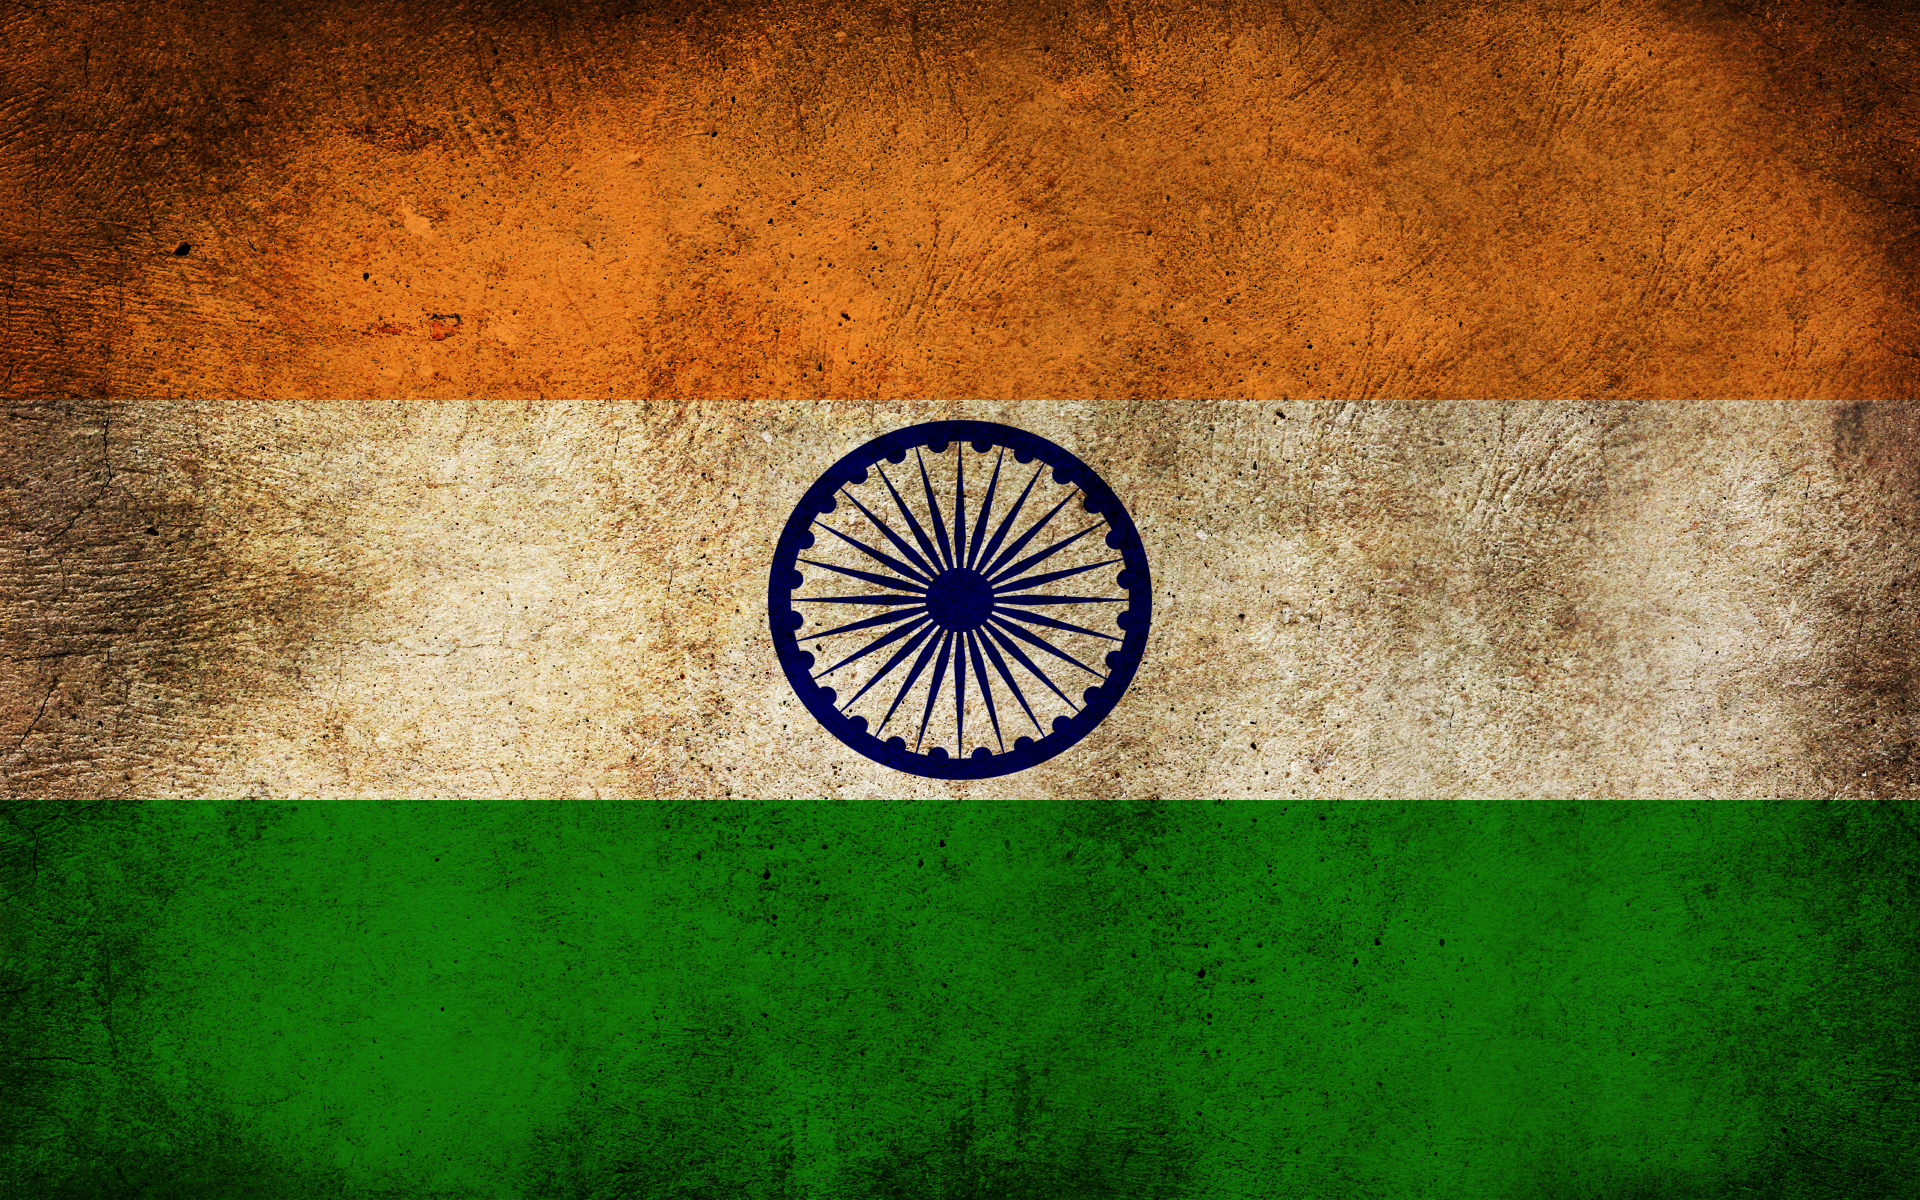 wallpaper flag grunge india 1920x1200 1920x1200